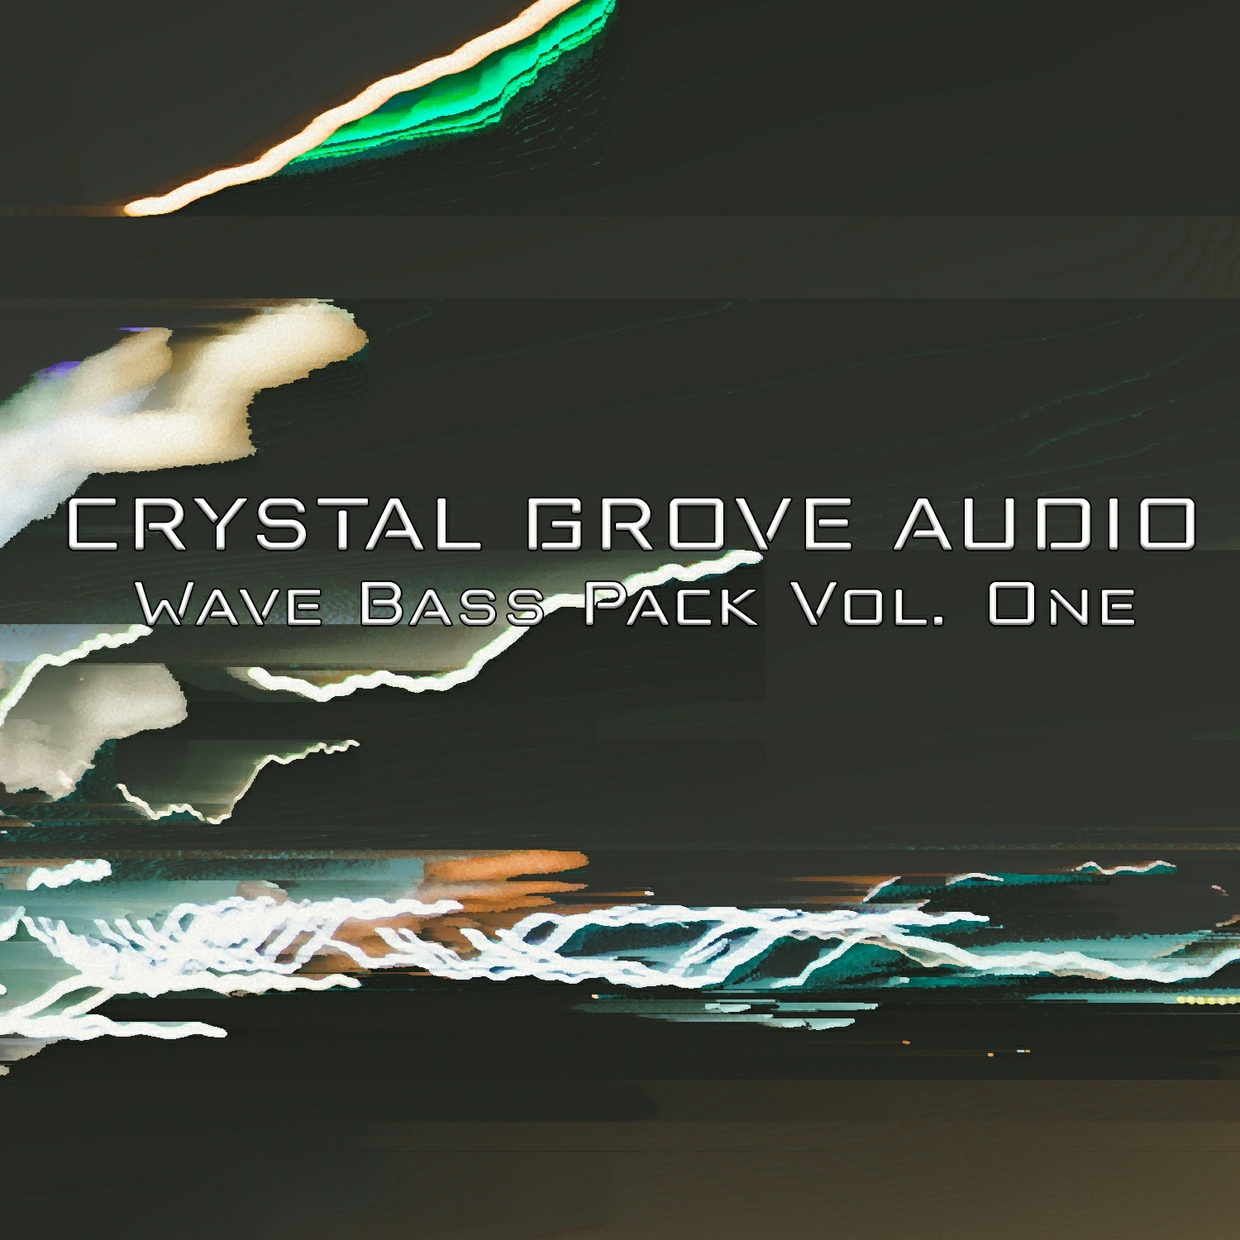 Wave Bass Pack Vol. 1